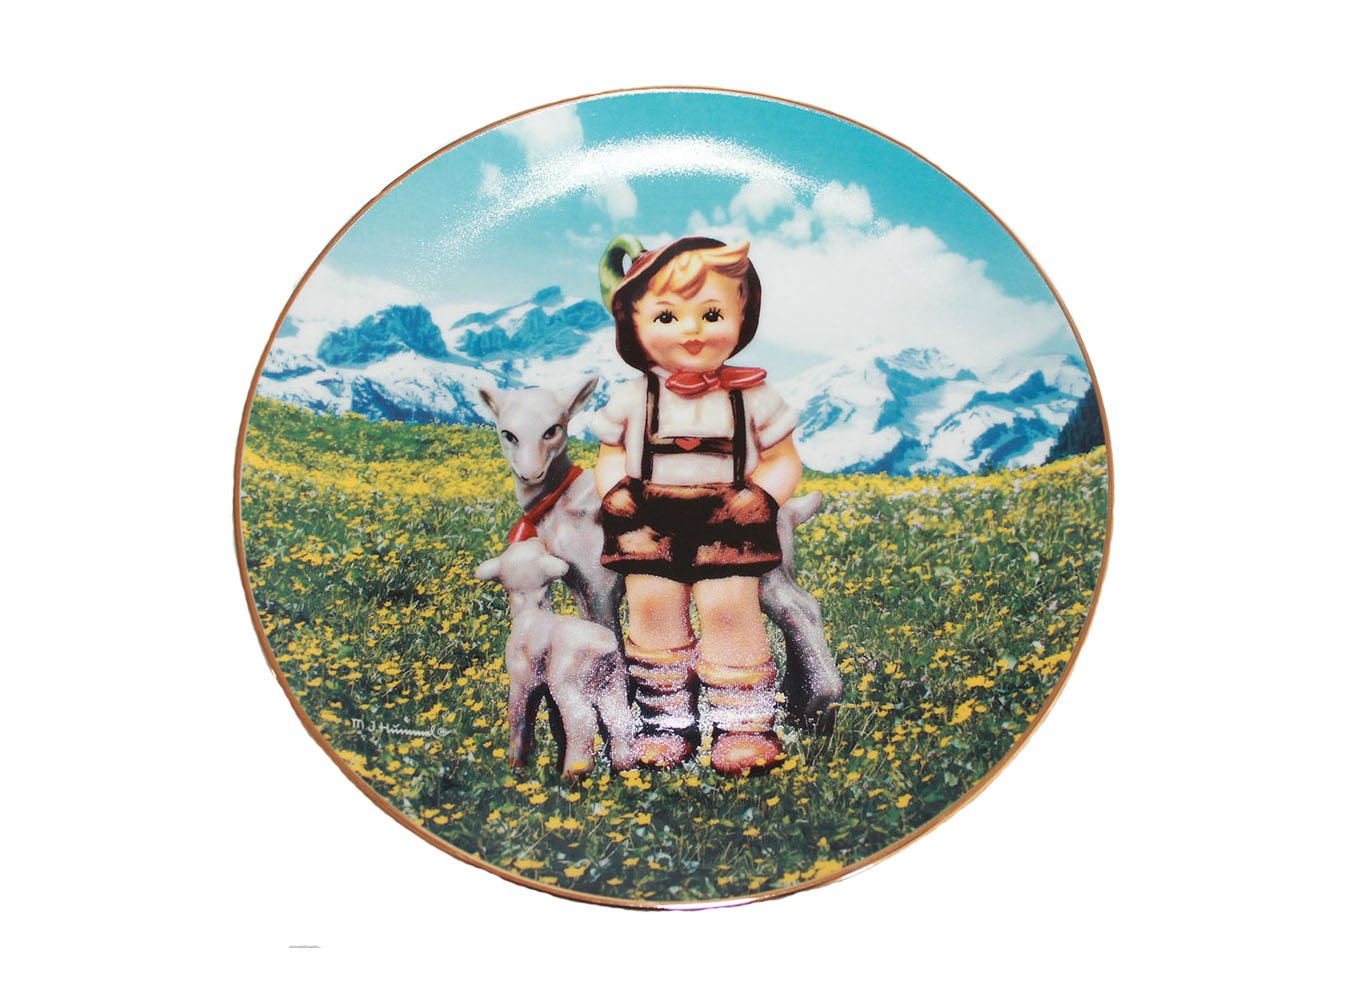 """Little Goat Herder by M. I. Hummel 8 1/4"""""""" Collectible Plate 23kt Gold Trim COA"""